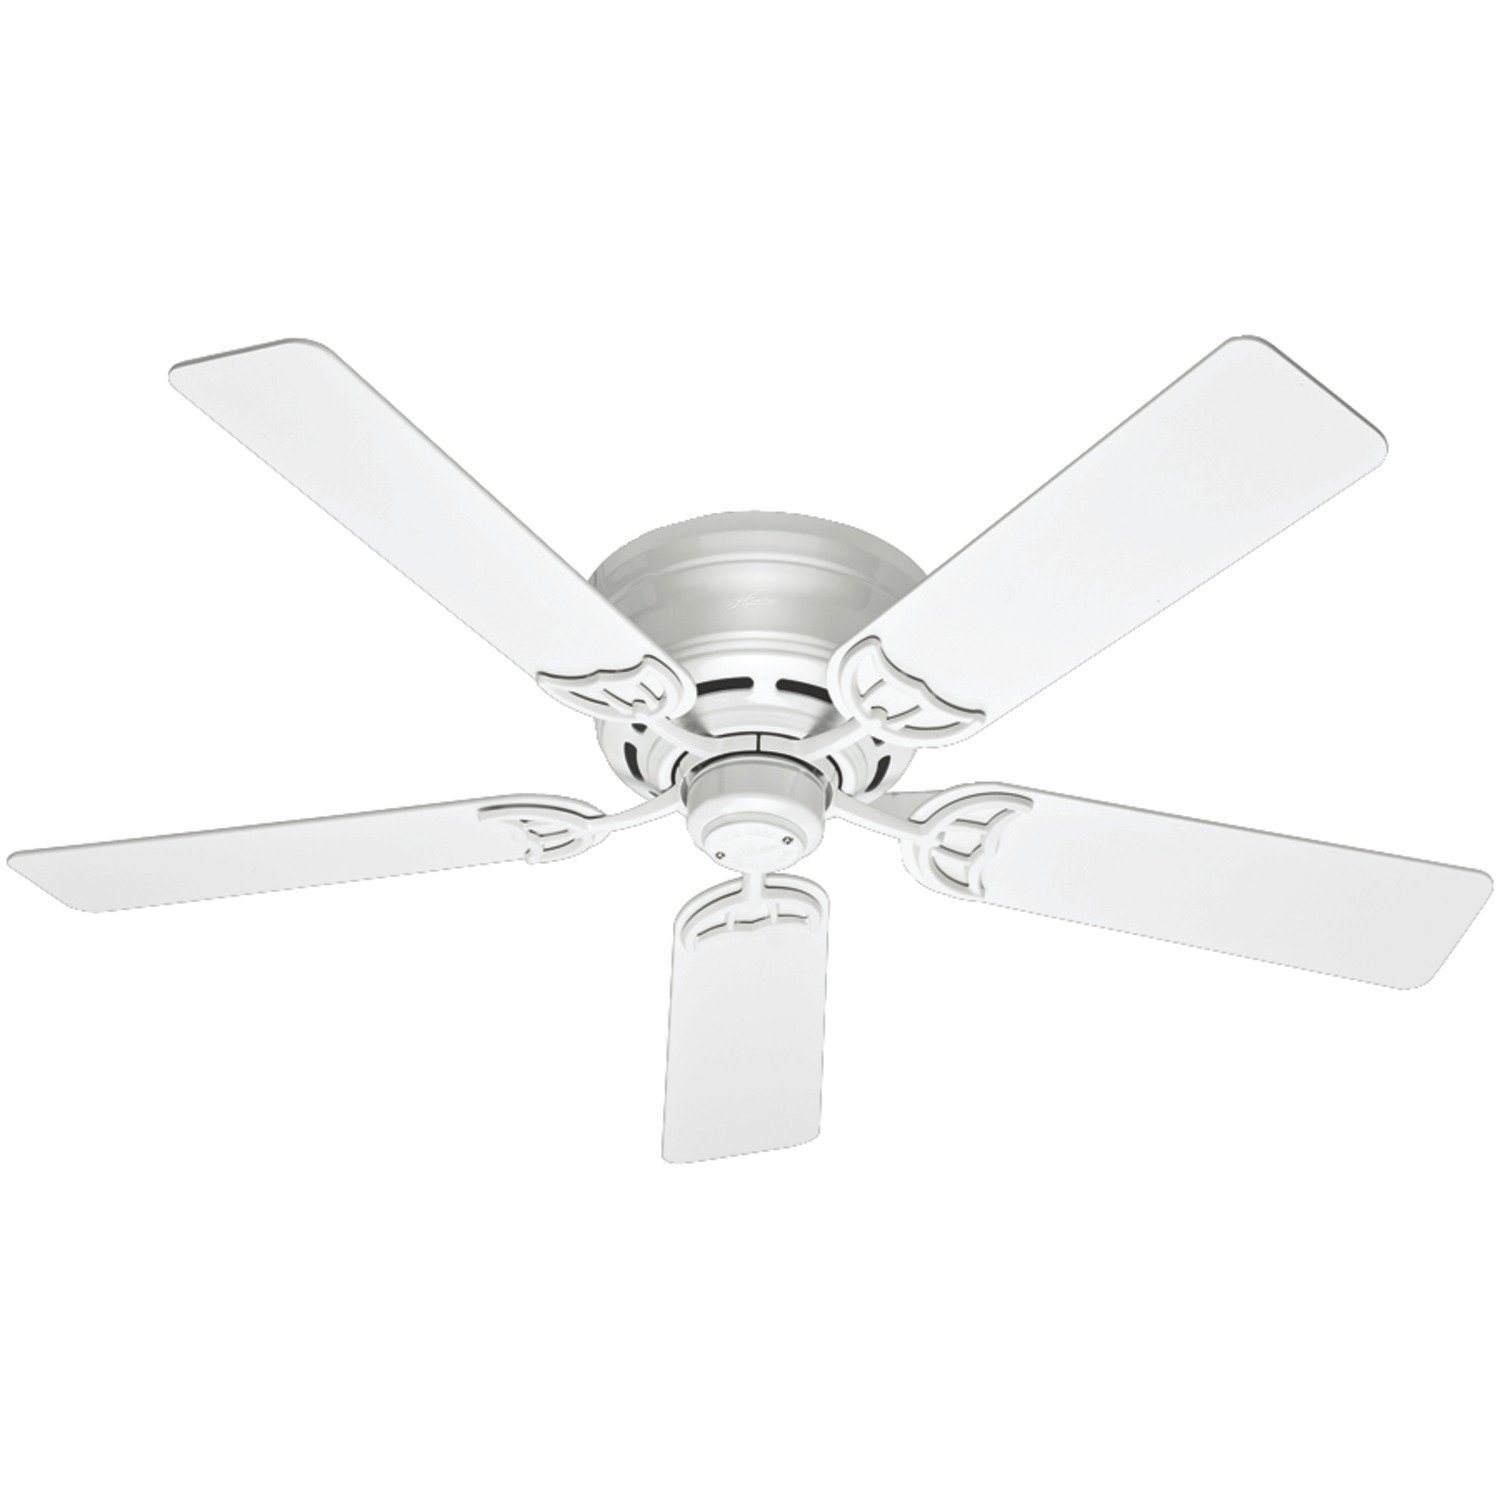 Ceiling Fans with Remote Control Benefit